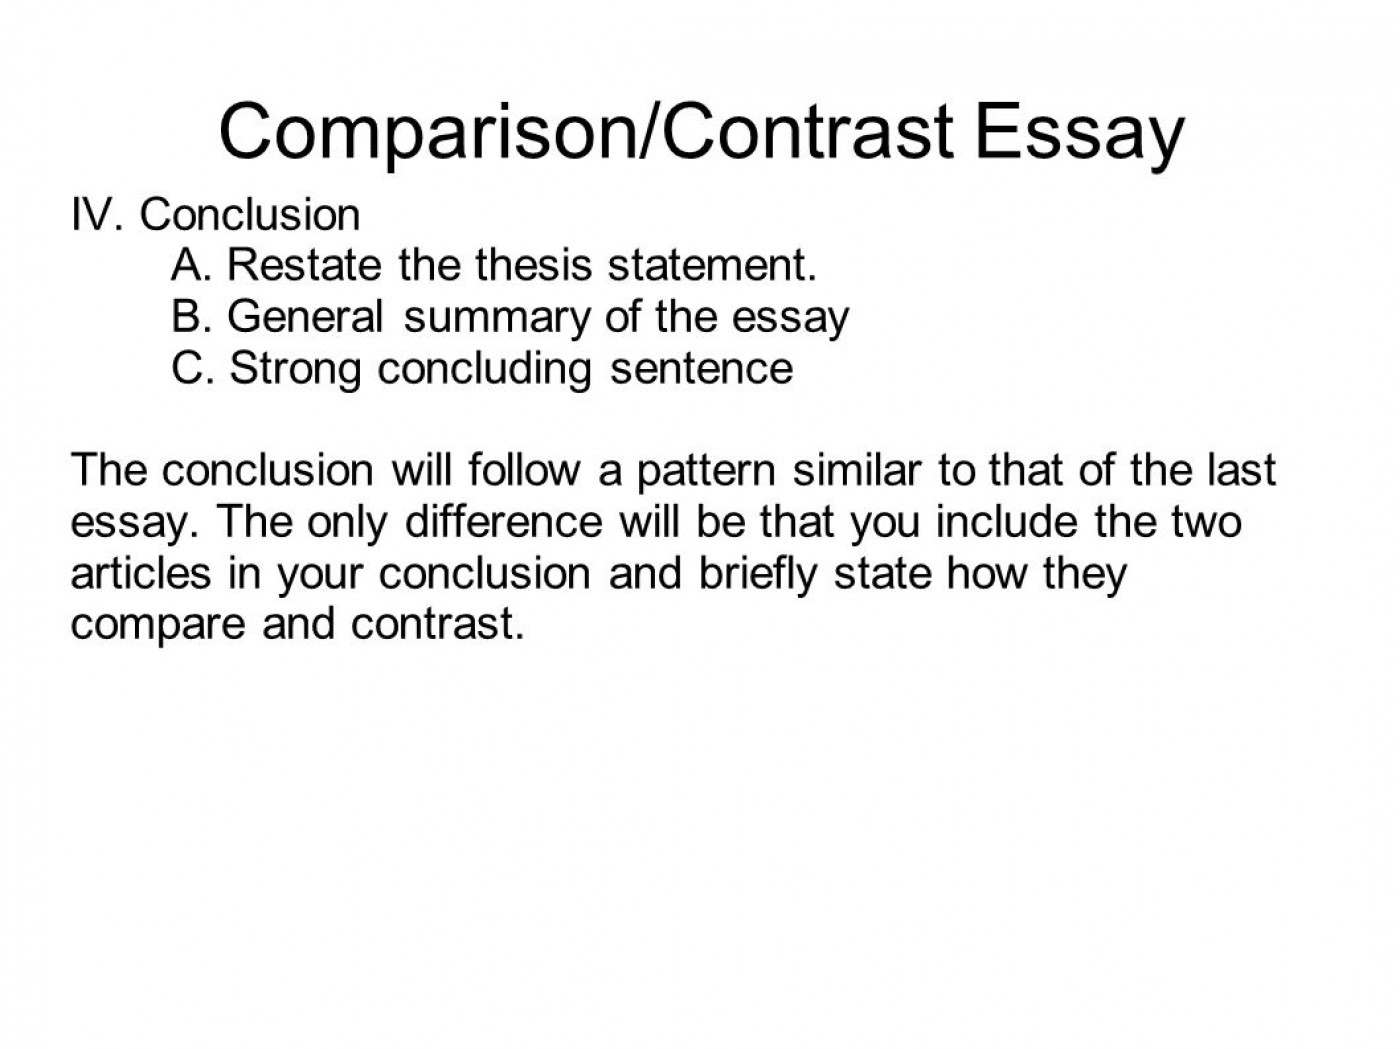 010 Good Compare And Contrast Essays Conclusion Paragraph For How To Write An Essay Sli Analysis Argumentative Art Academic Informative Sentence Opinion Unbelievable A Examples Transition Words Pdf 1400